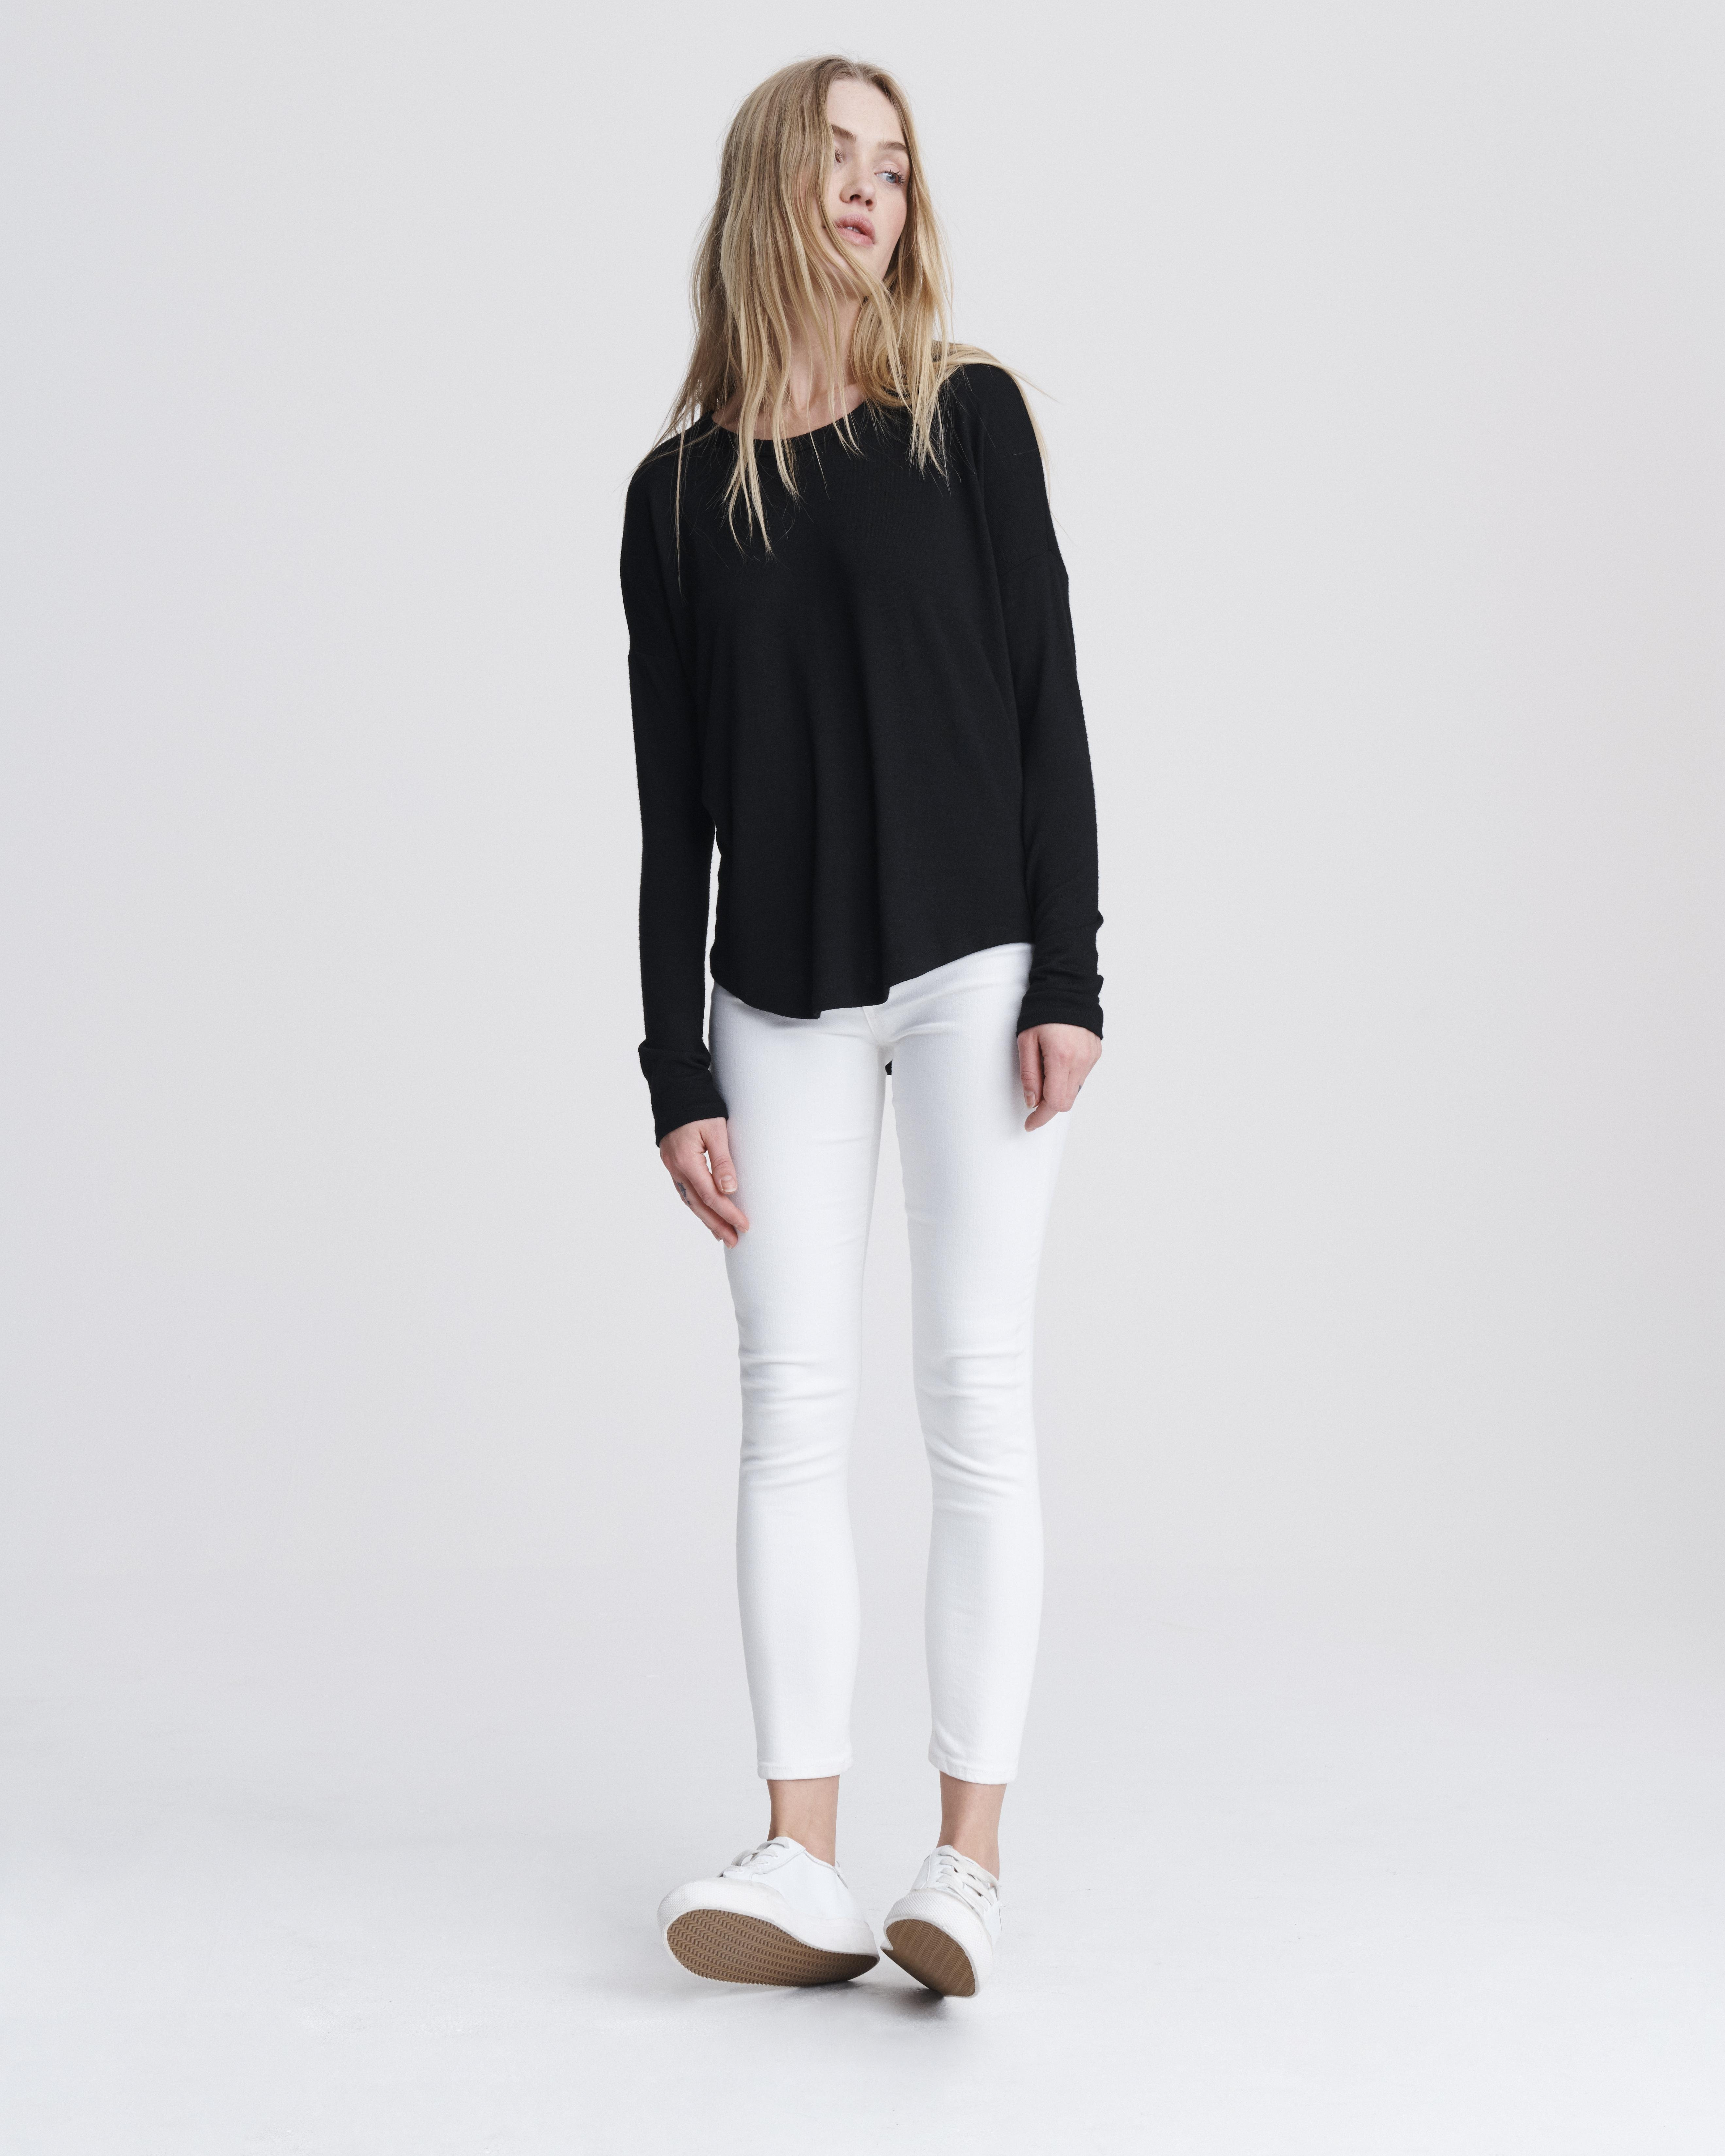 The knit tee 3